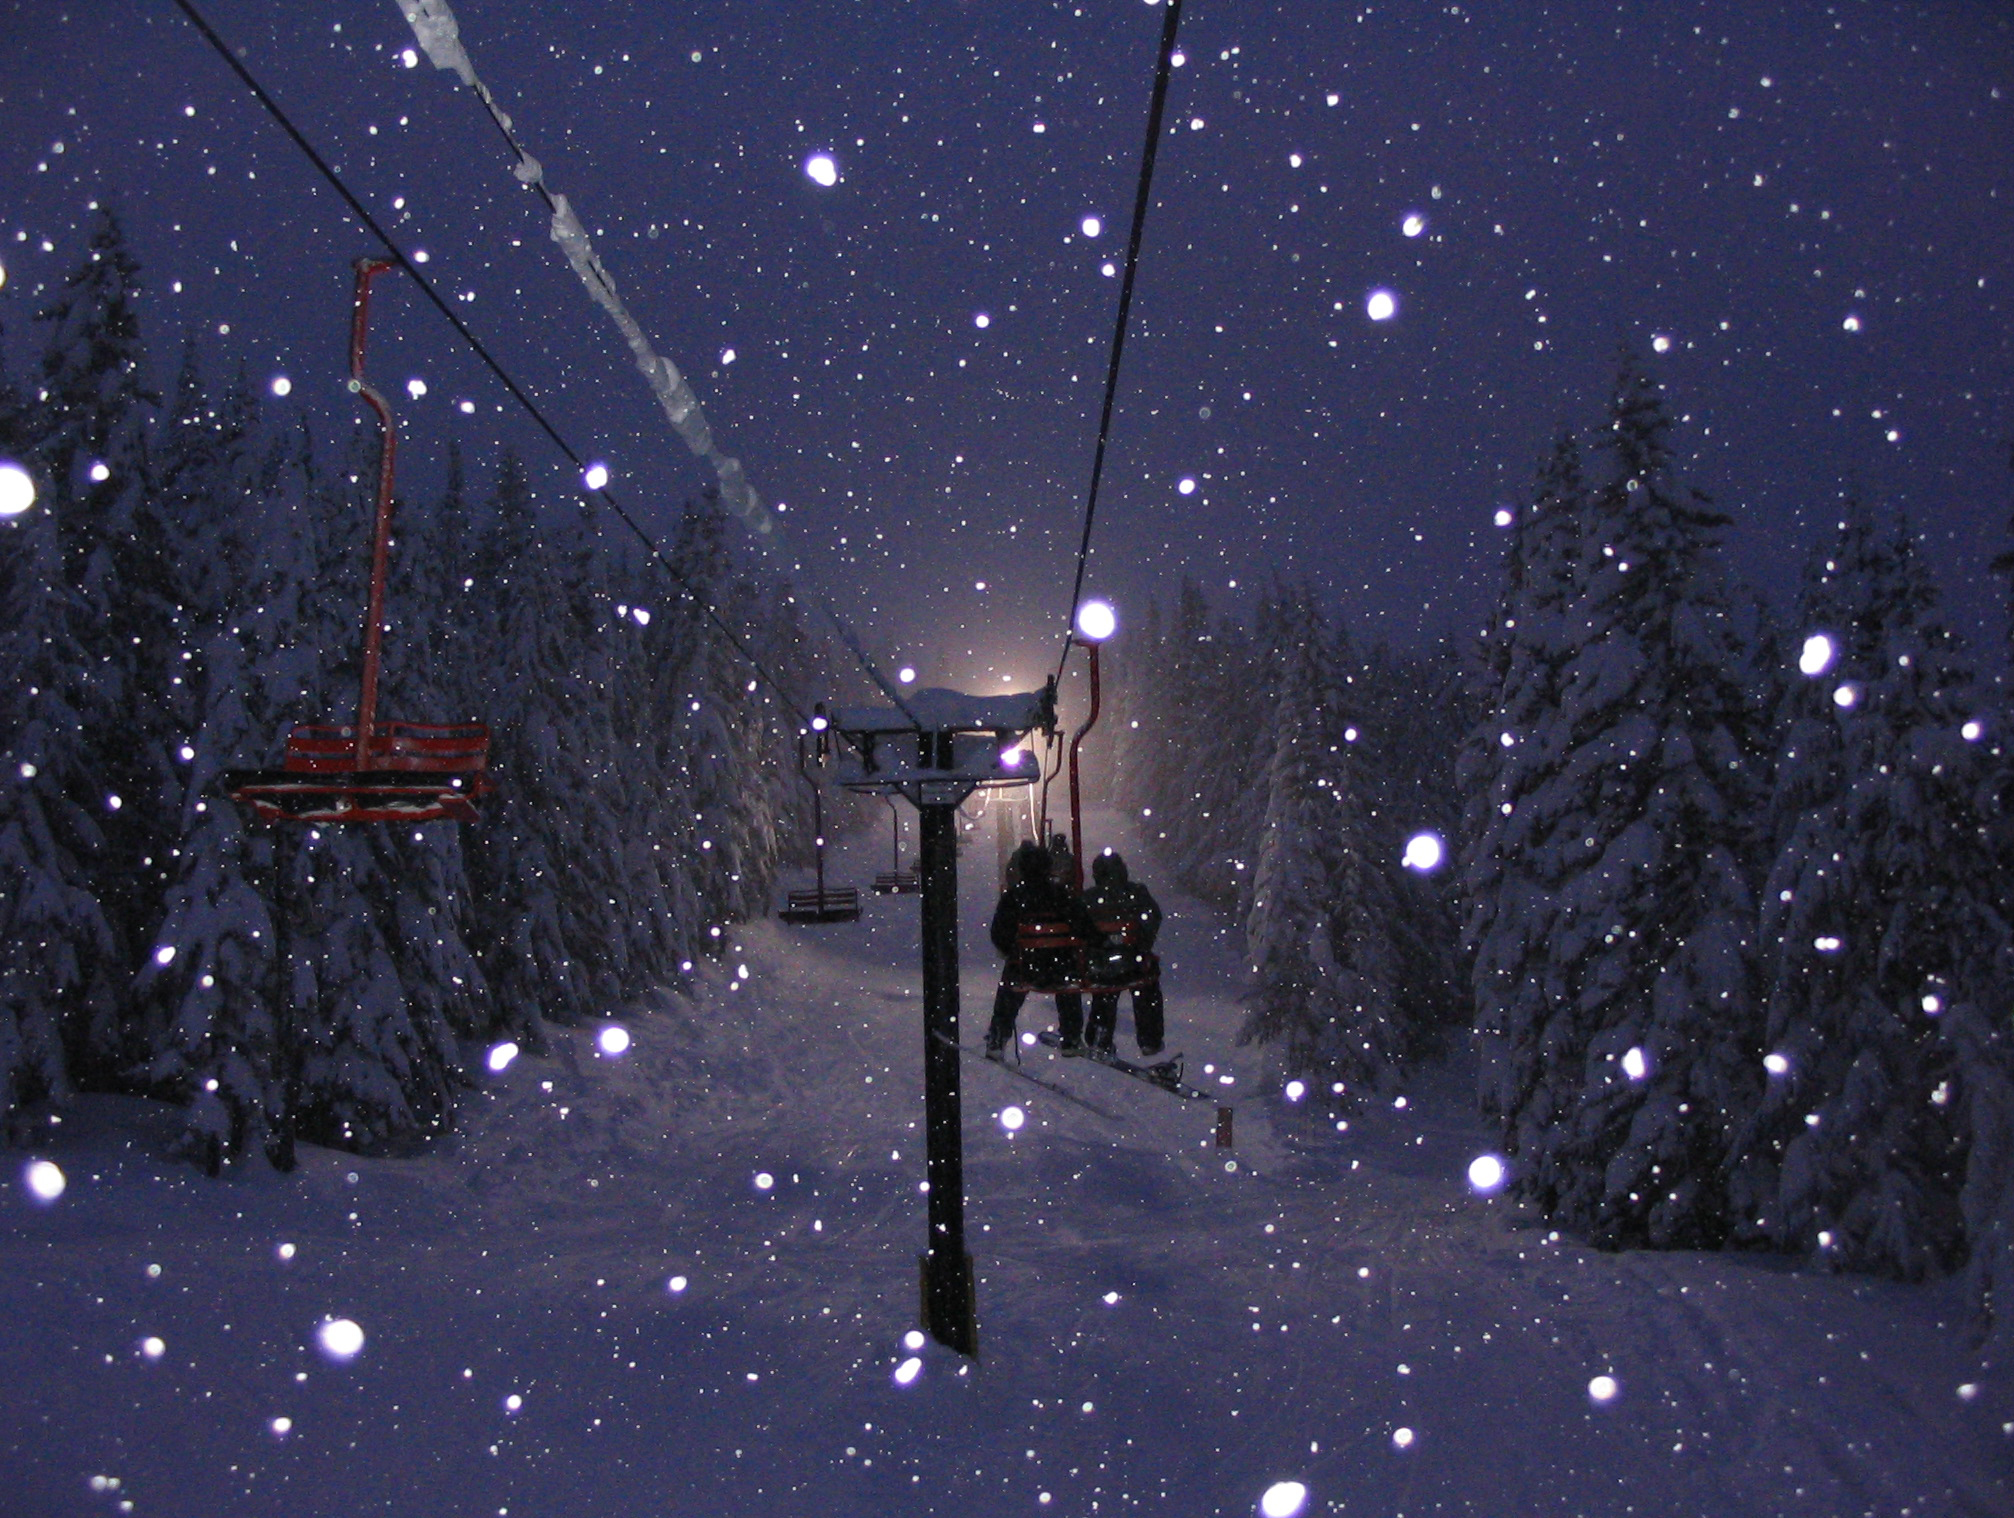 Couple on chairlift with snow falling on the mountain.